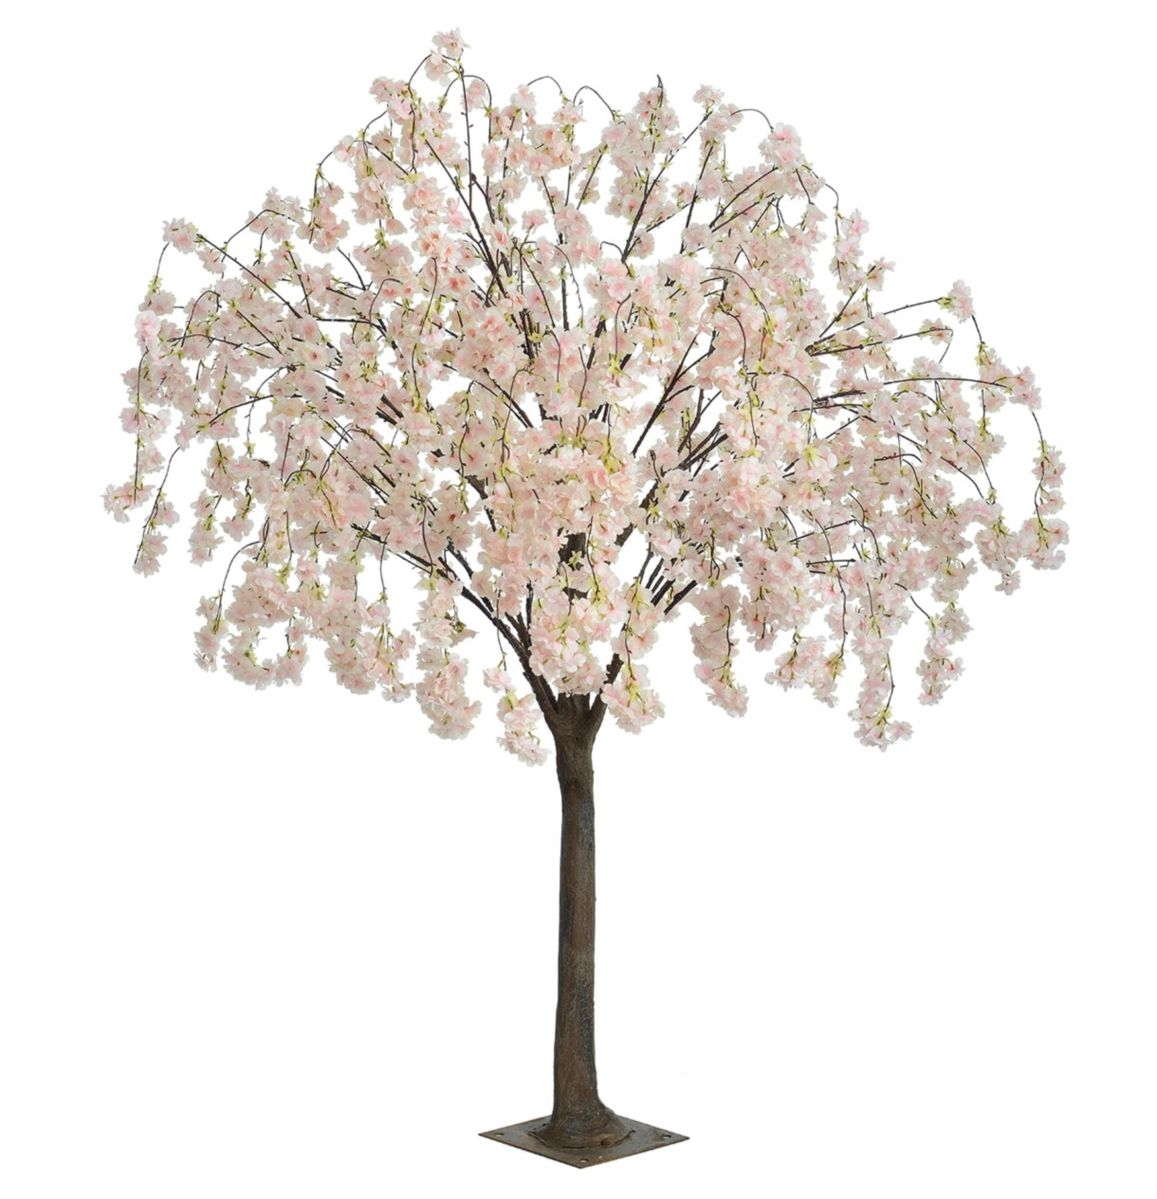 Artificial Blossom Tree With Pink Cream White Trailing Or Hanging Flowers Artificial Cherry Blossom Tree Blossom Trees Hanging Flowers